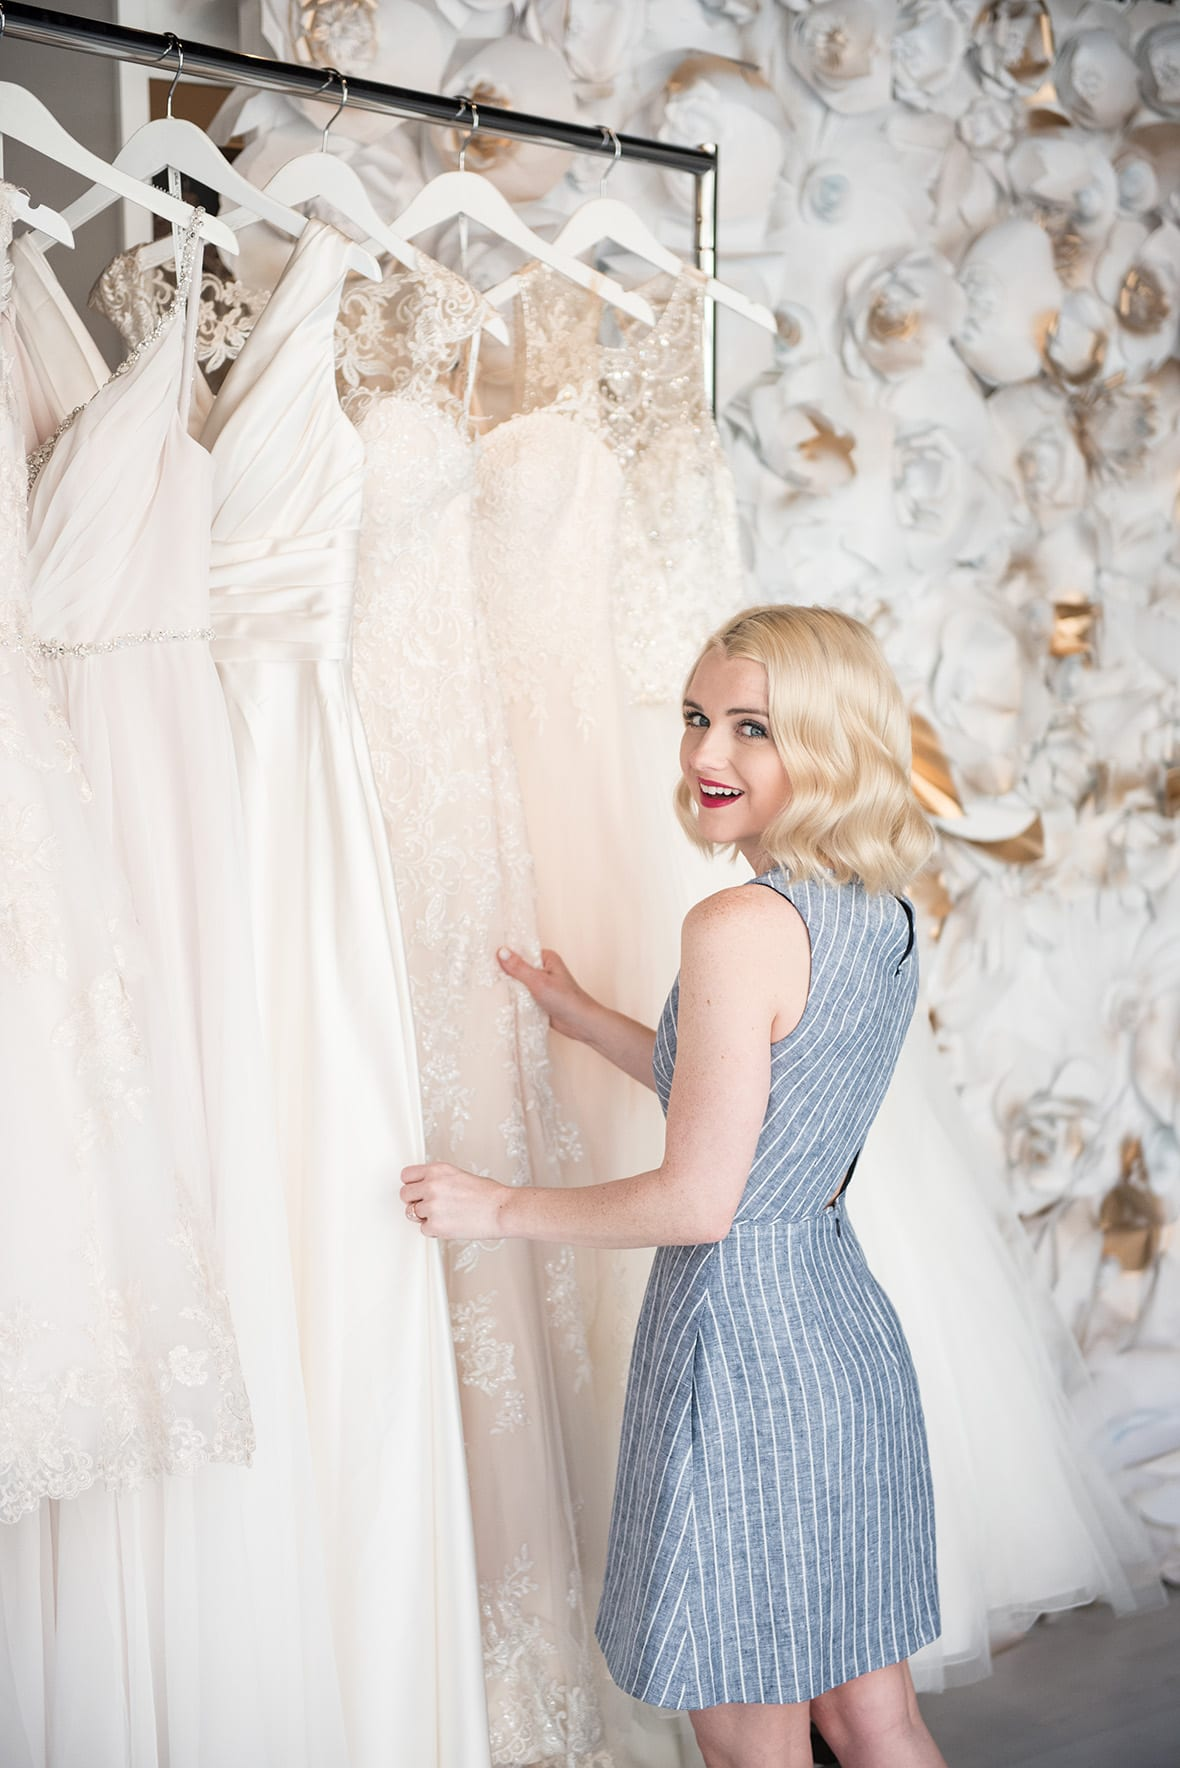 How To Find Your Perfect Wedding Dress